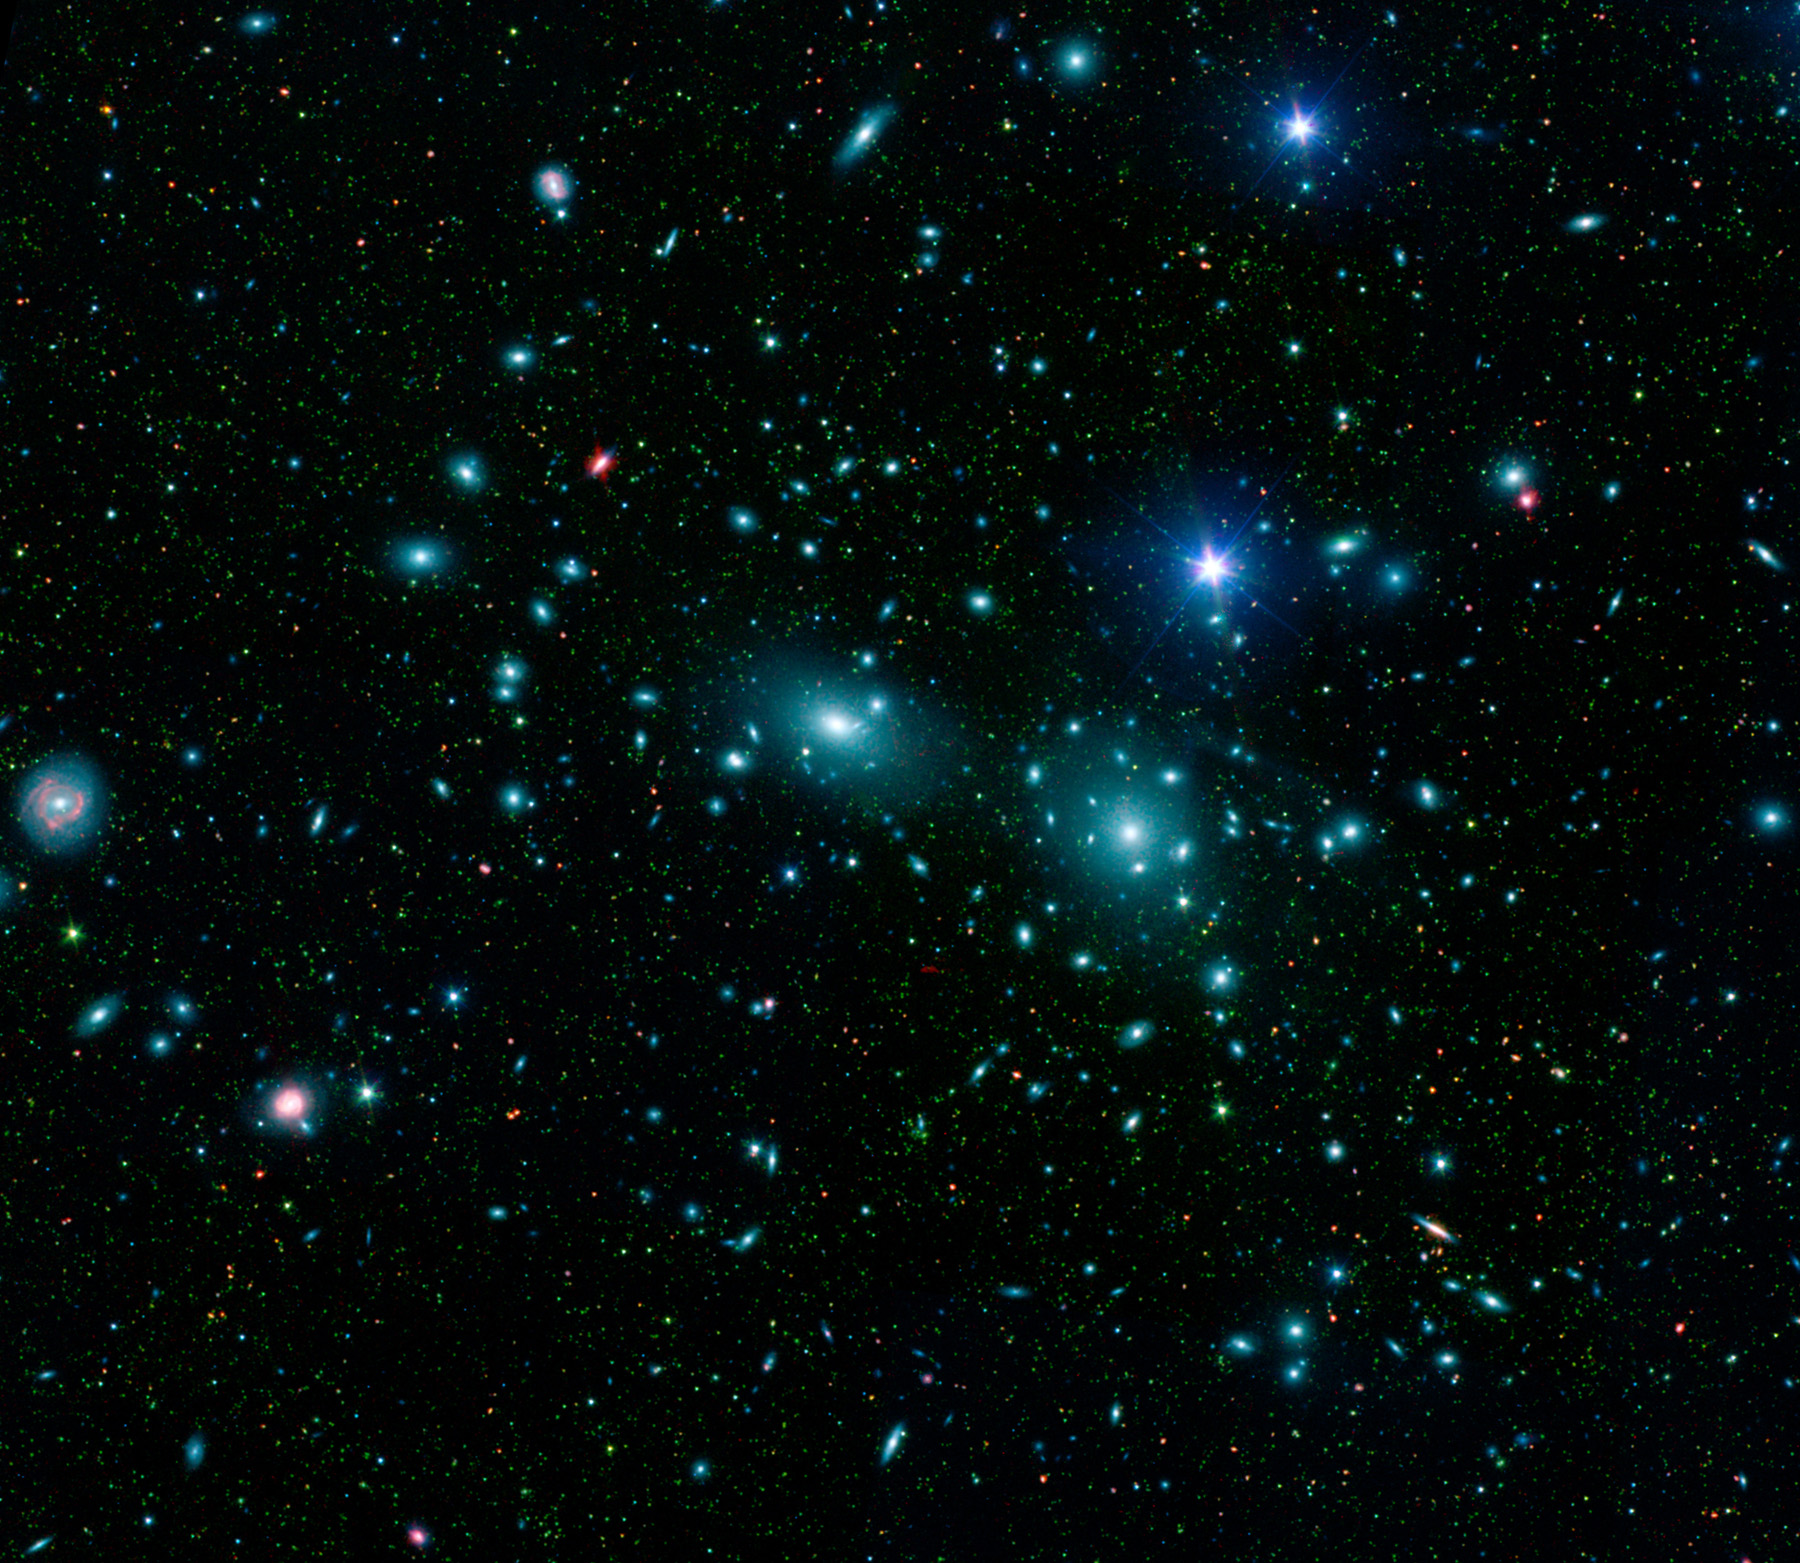 2007 May 31 - Dwarf Galaxies in the Coma Cluster